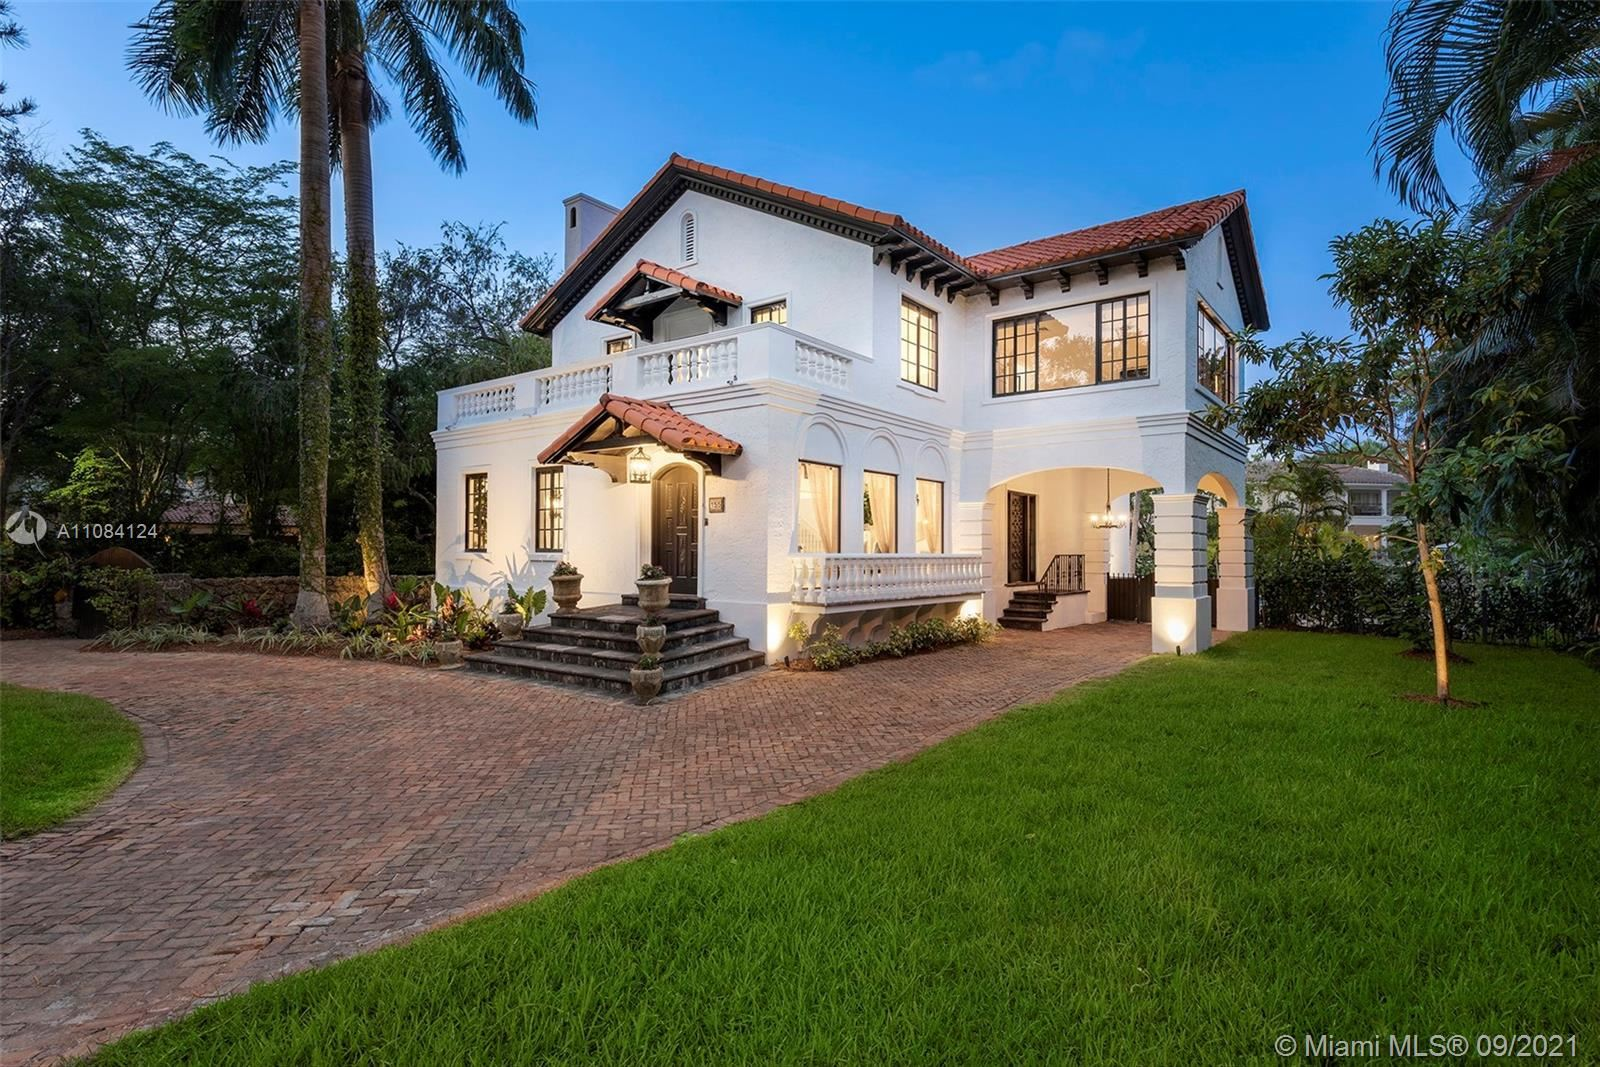 Photo of 155 Cocoplum Rd, Coral Gables, FL 33143 (MLS # A11084124)